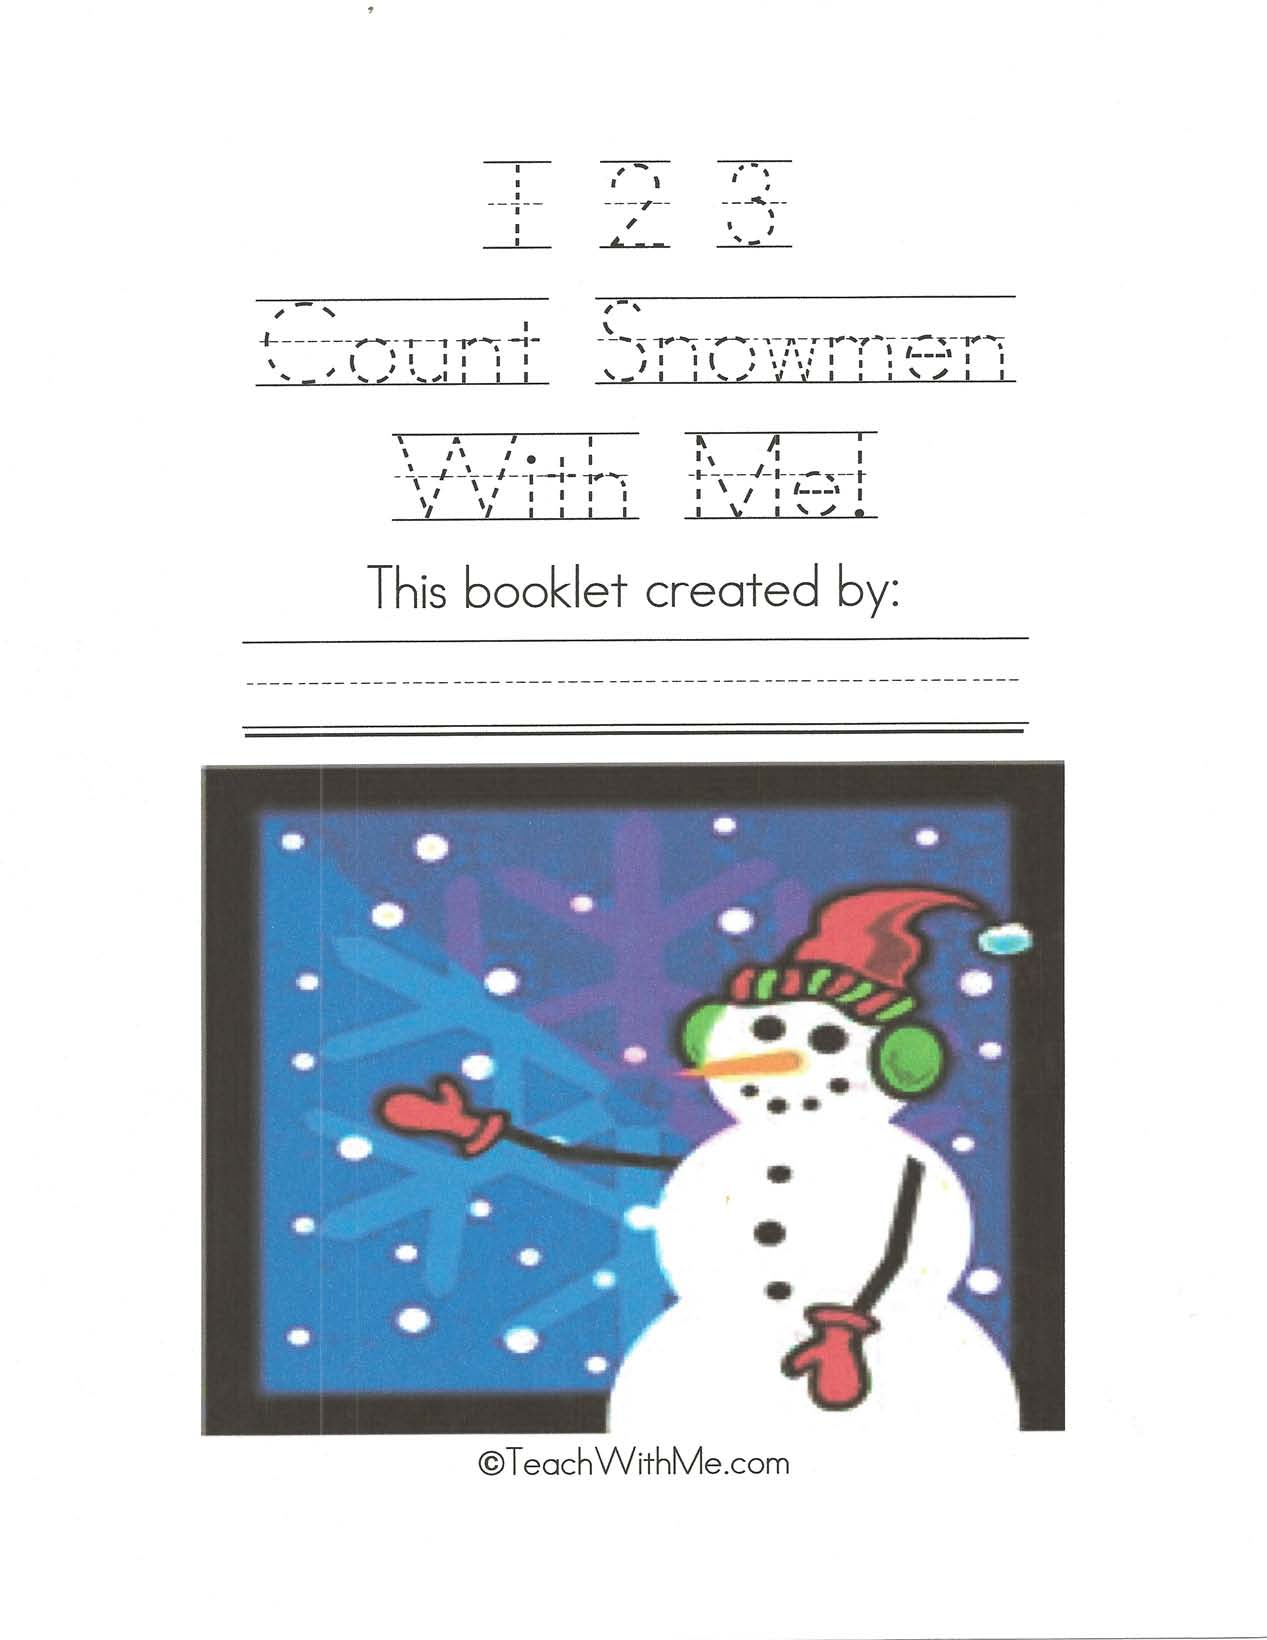 free common core lessons for kindergarten and first grade, counting booklets, mitten activities, snowman activities, snowflake activities, addition activities, plus one more activities, 10 frame activities, Daily 5 activities for winter, December activities, January activities, winter easy readers, number words, word work for Daily 5